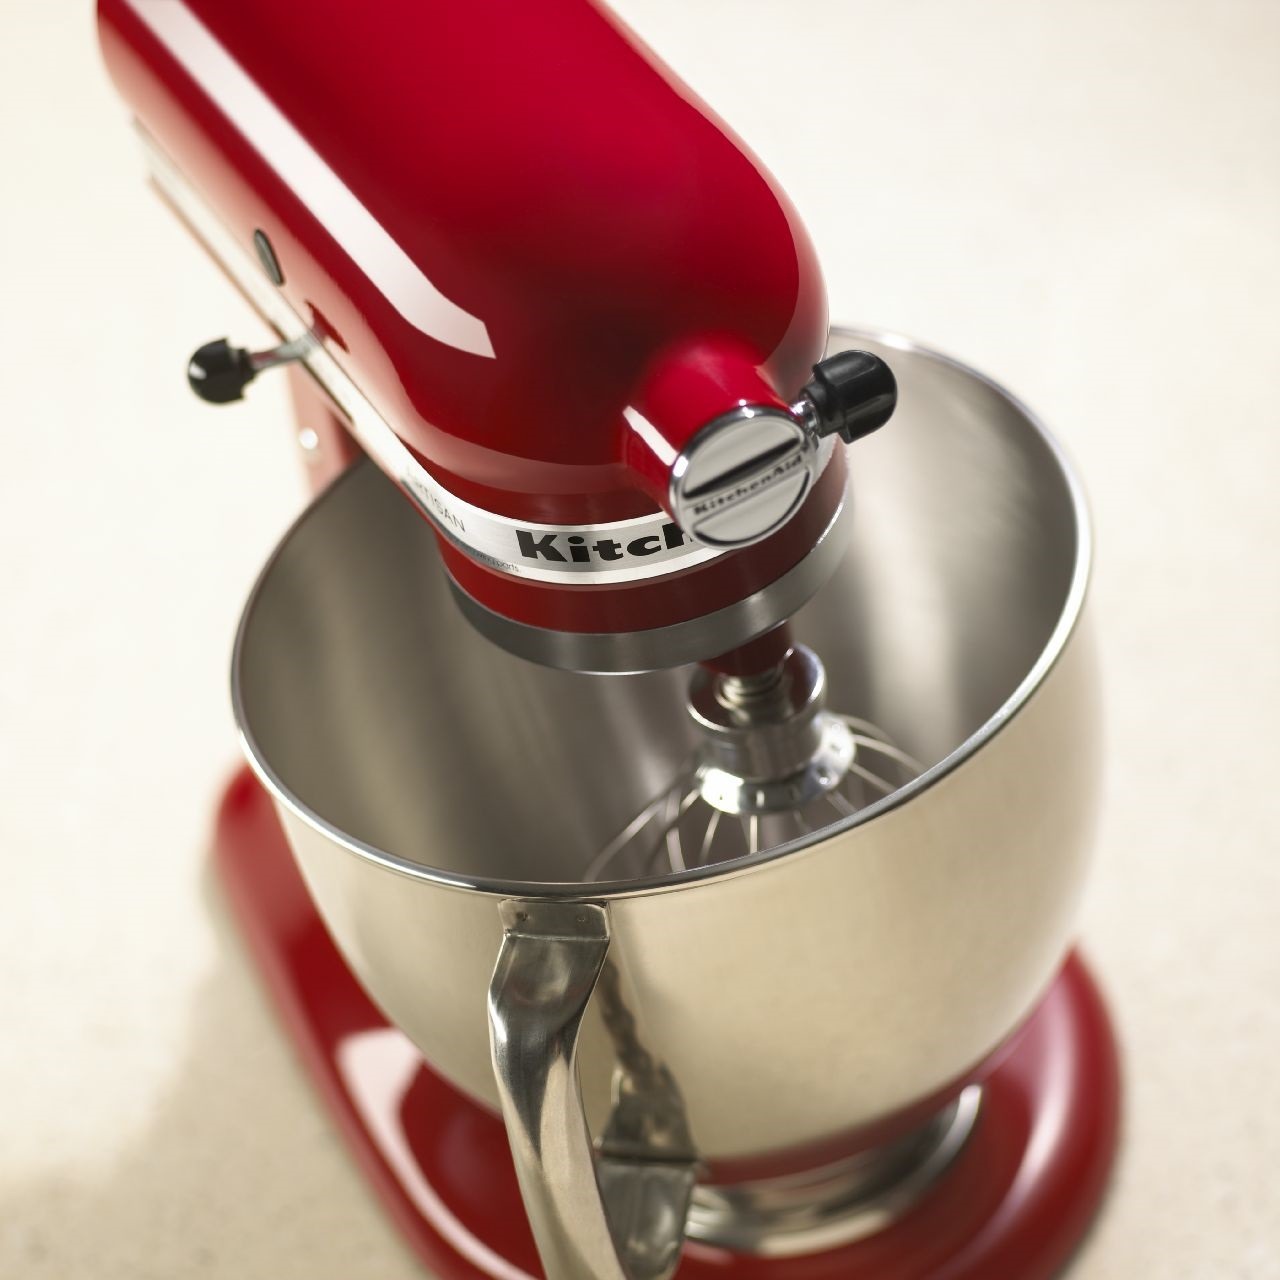 KitchenAid® Refurbished Artisan® Series 5 Quart Tilt-Head Stand Mixer, RRK150